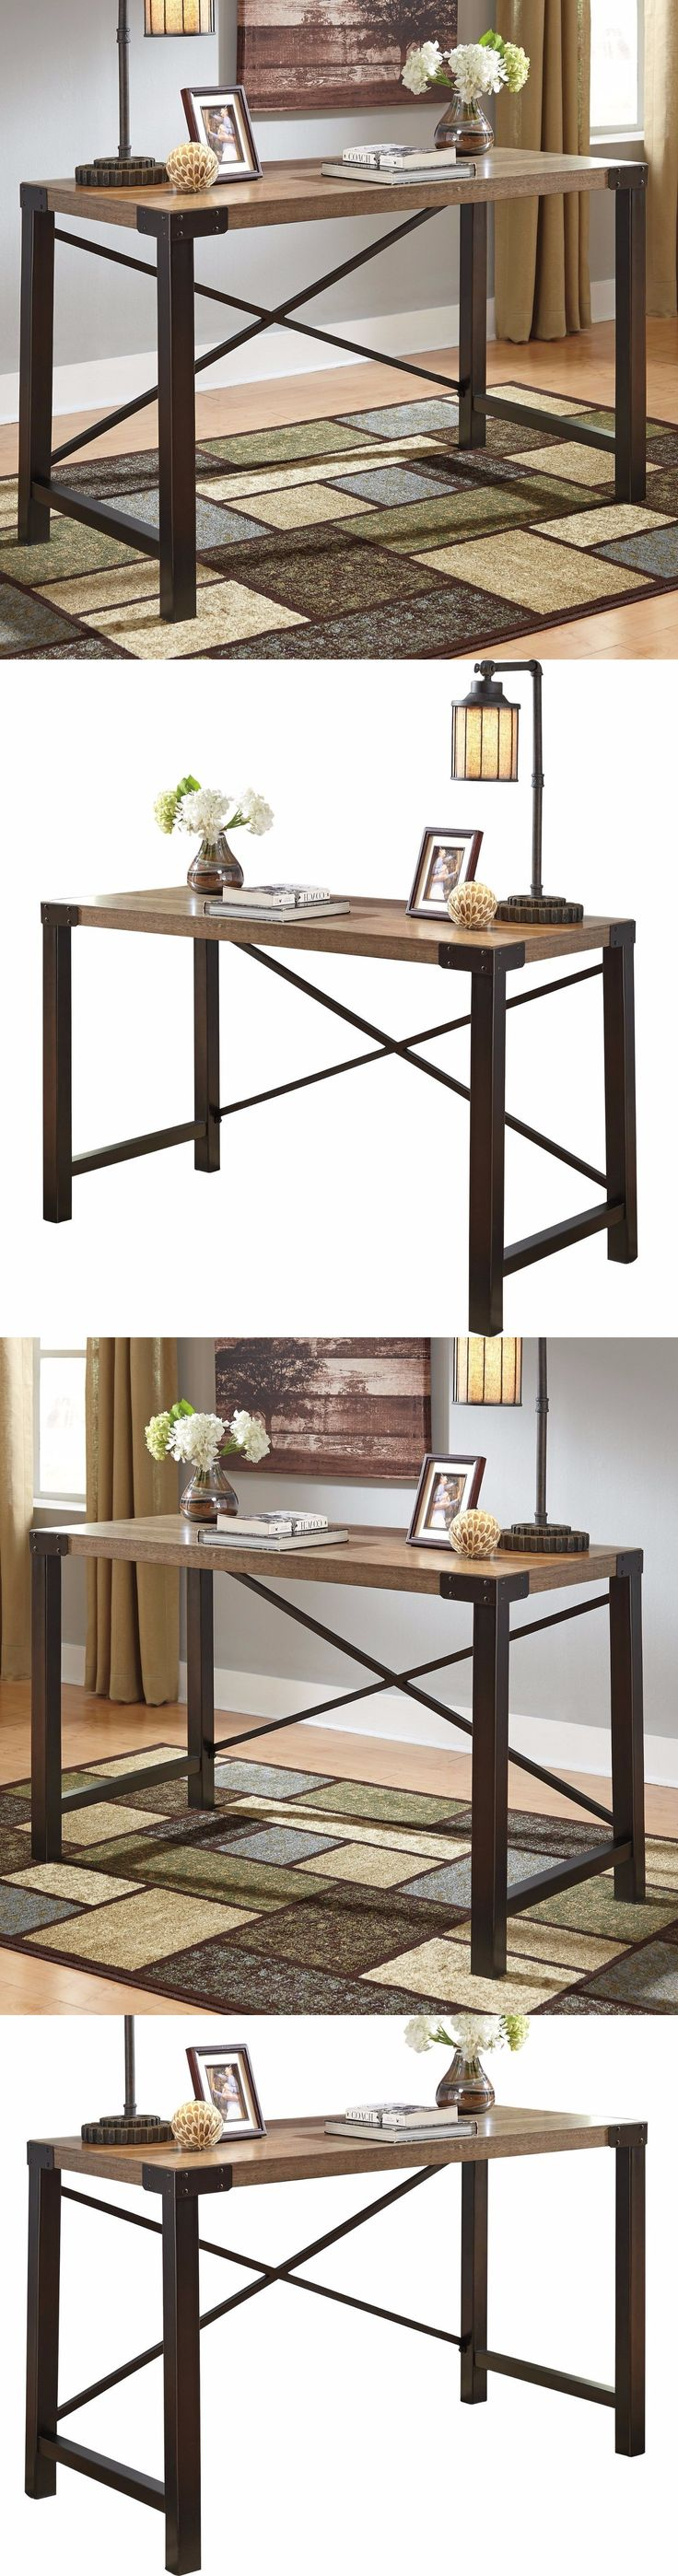 Office Furniture: Industrial Computer Desk Rustic Writing Wood Metal Office Furniture Workstation -> BUY IT NOW ONLY: $174.99 on eBay!